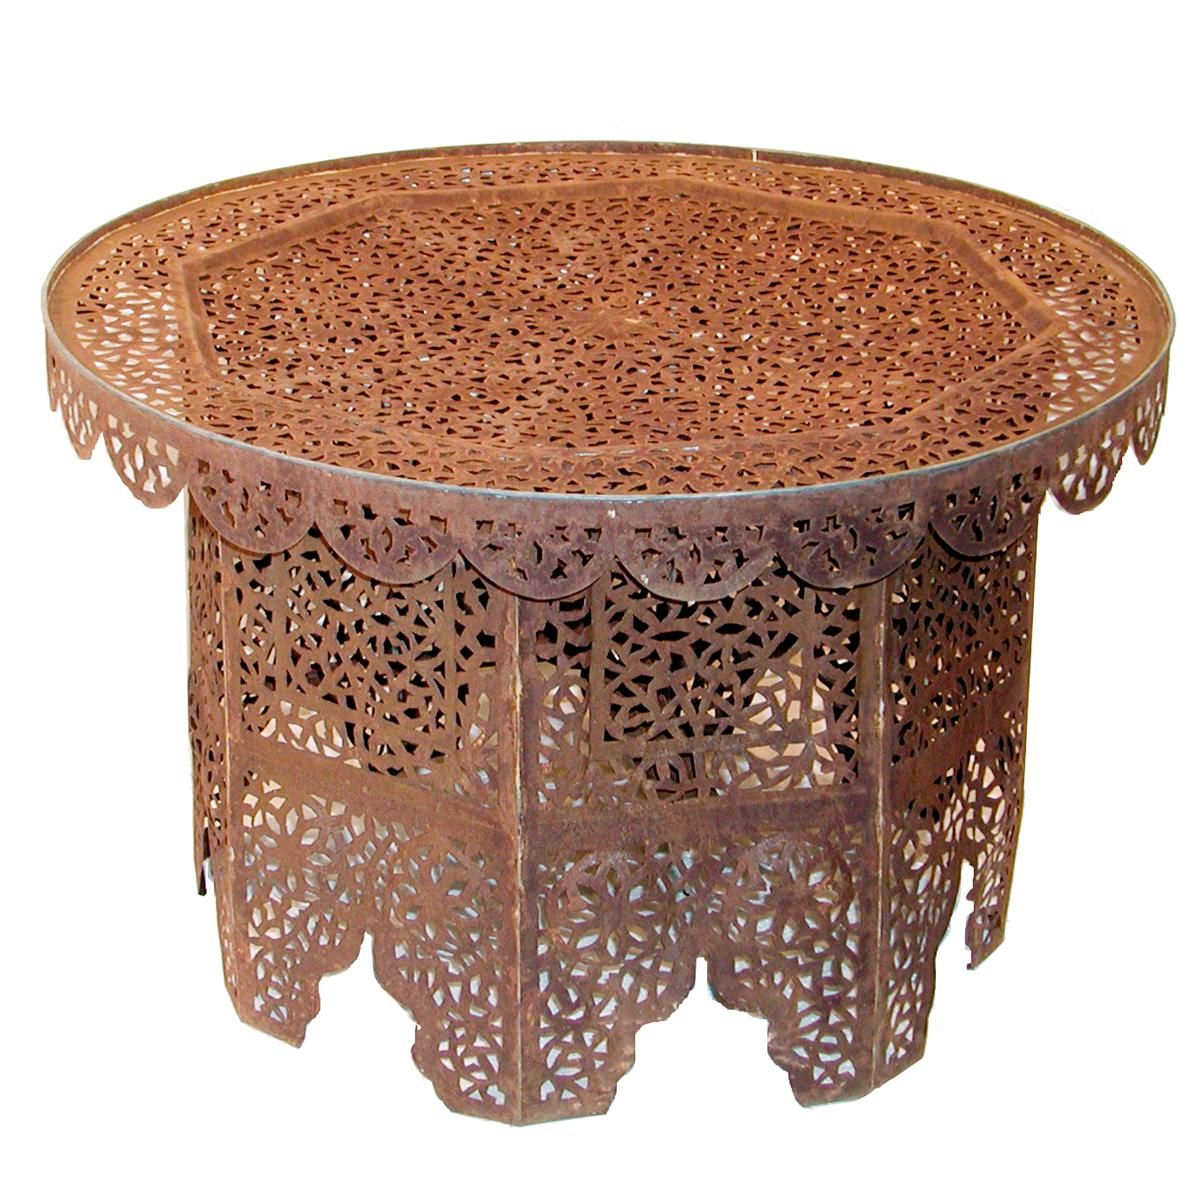 Moroccan Iron Lace Coffee Table, Can Go On Outside Covered Porch!